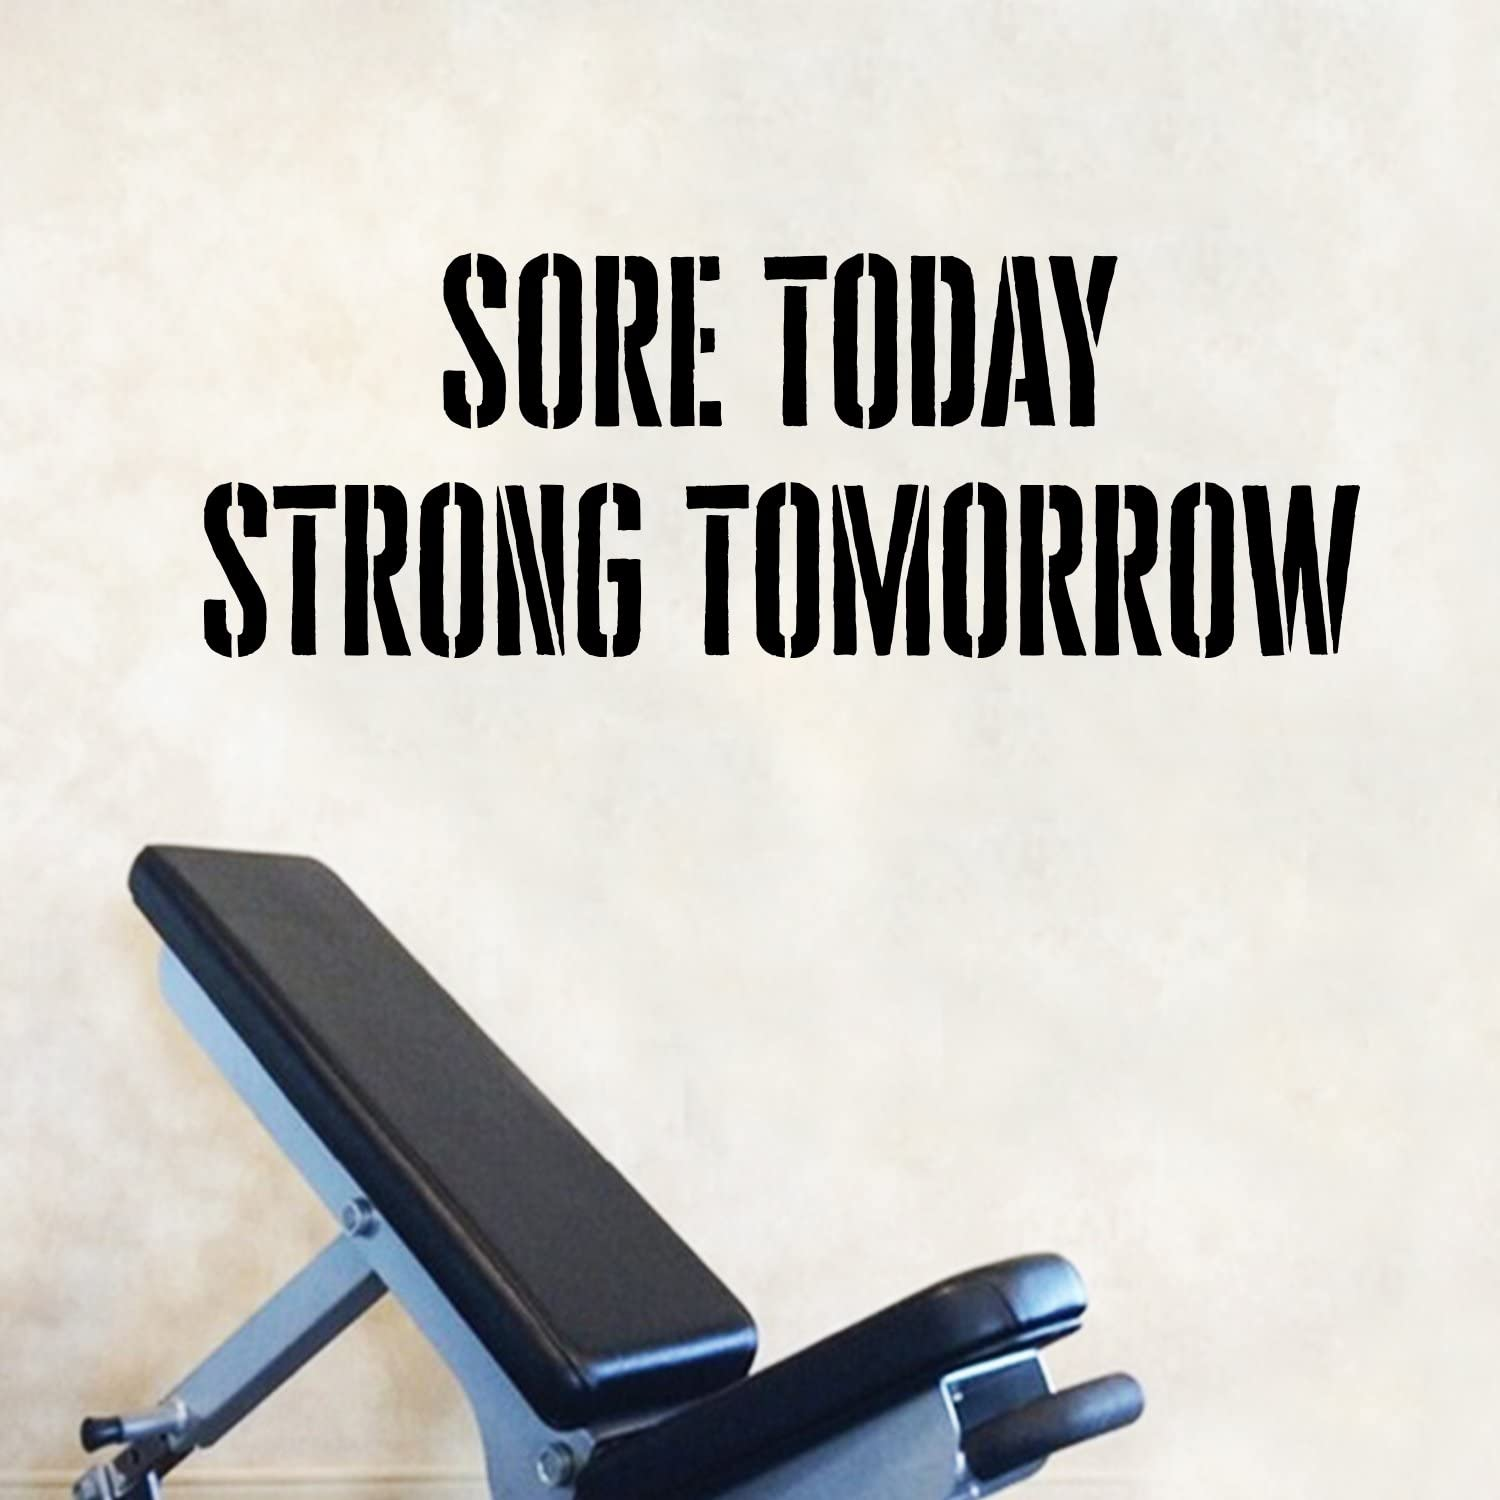 "Vinyl Wall Art Decal - Sore Today Strong Tomorrow - 14"" x 40"" - Positive Fitness Healthy Lifestyle Quote Sticker for Gym Crossfit Fitness Yoga Ballet Office Work Decor"